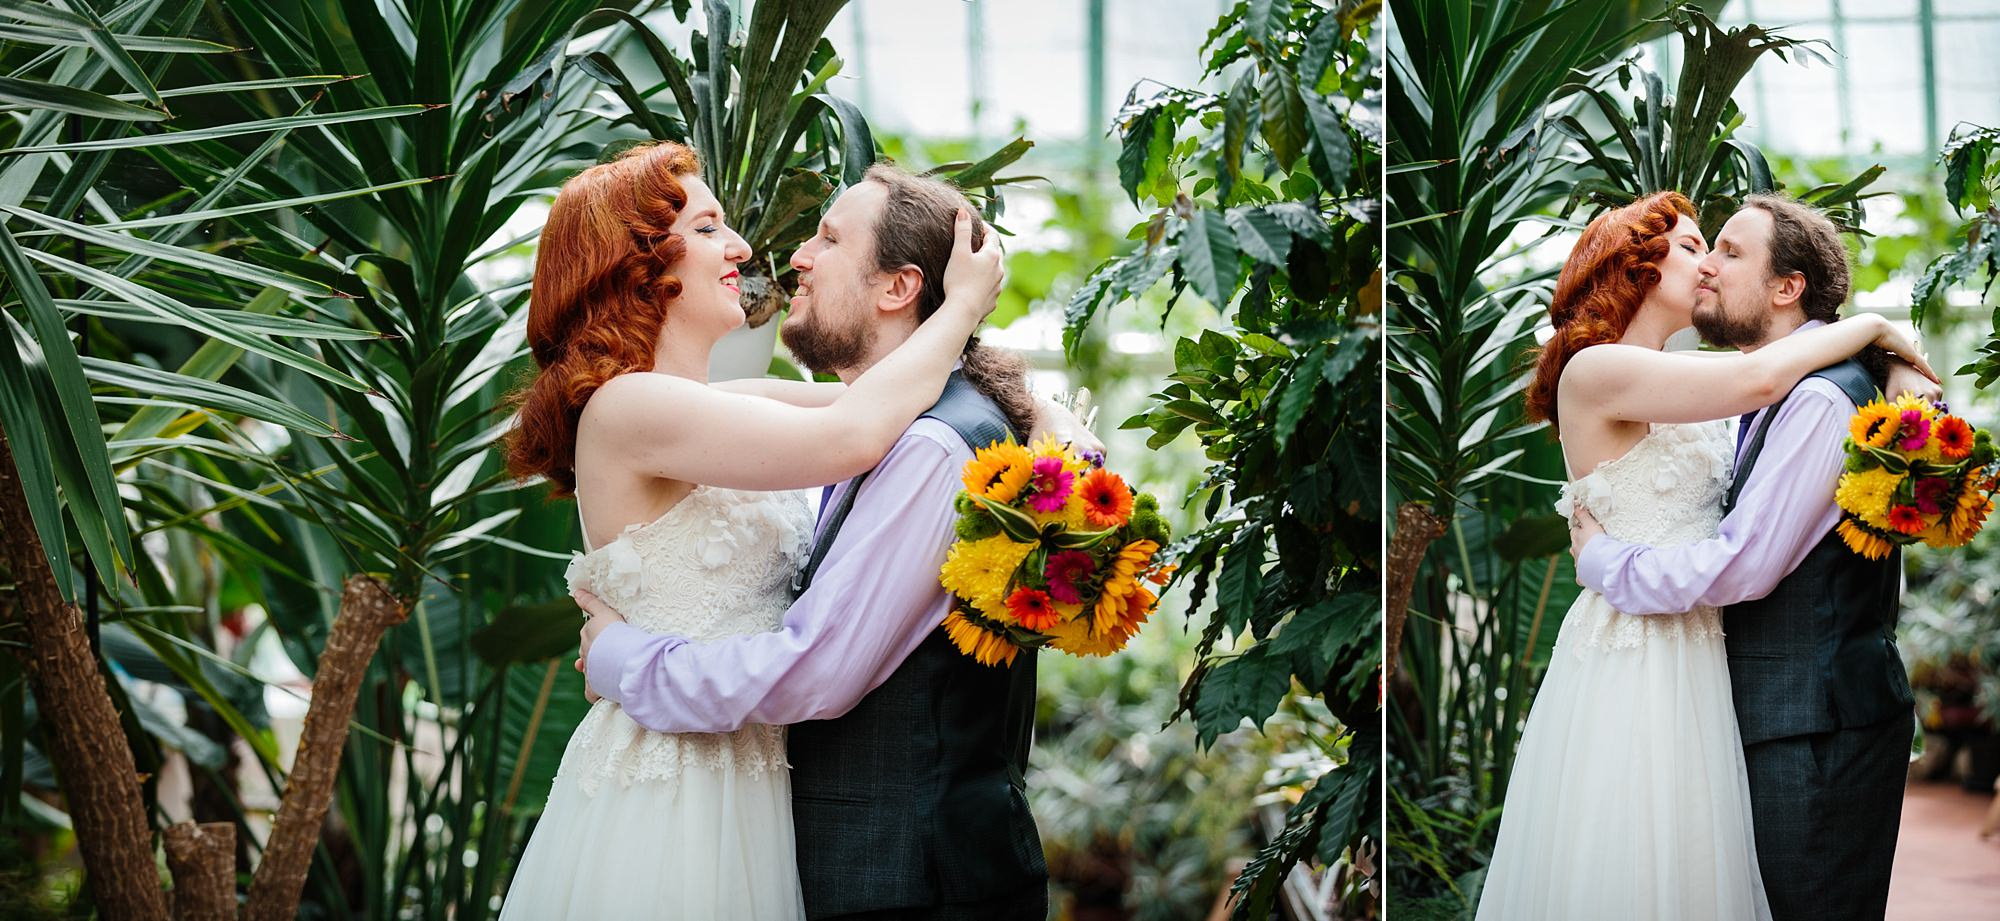 tropical wedding shoot groom and bride with tropical plants